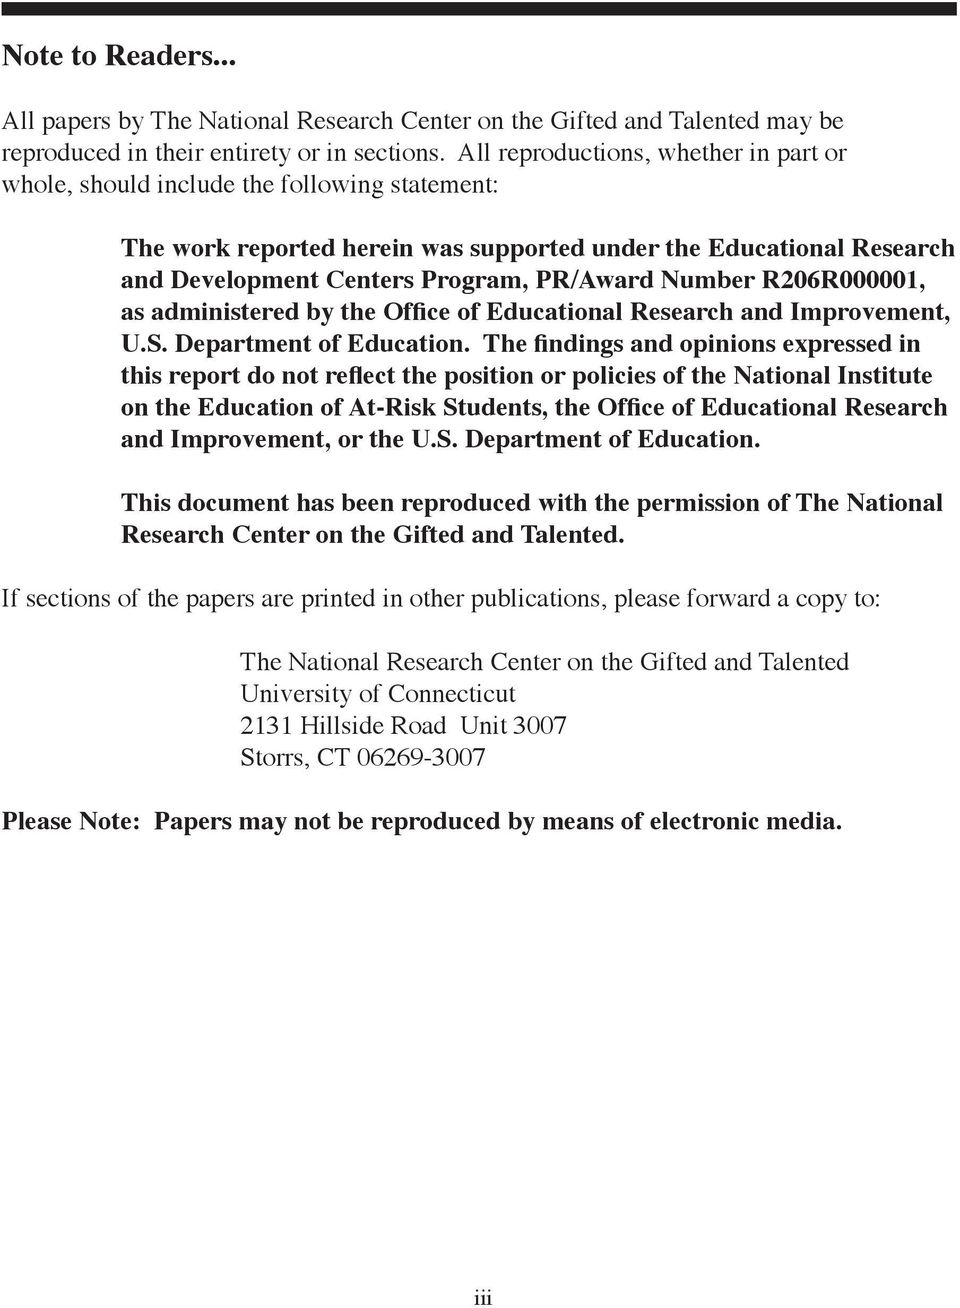 Number R206R000001, as administered by the Office of Educational Research and Improvement, U.S. Department of Education.